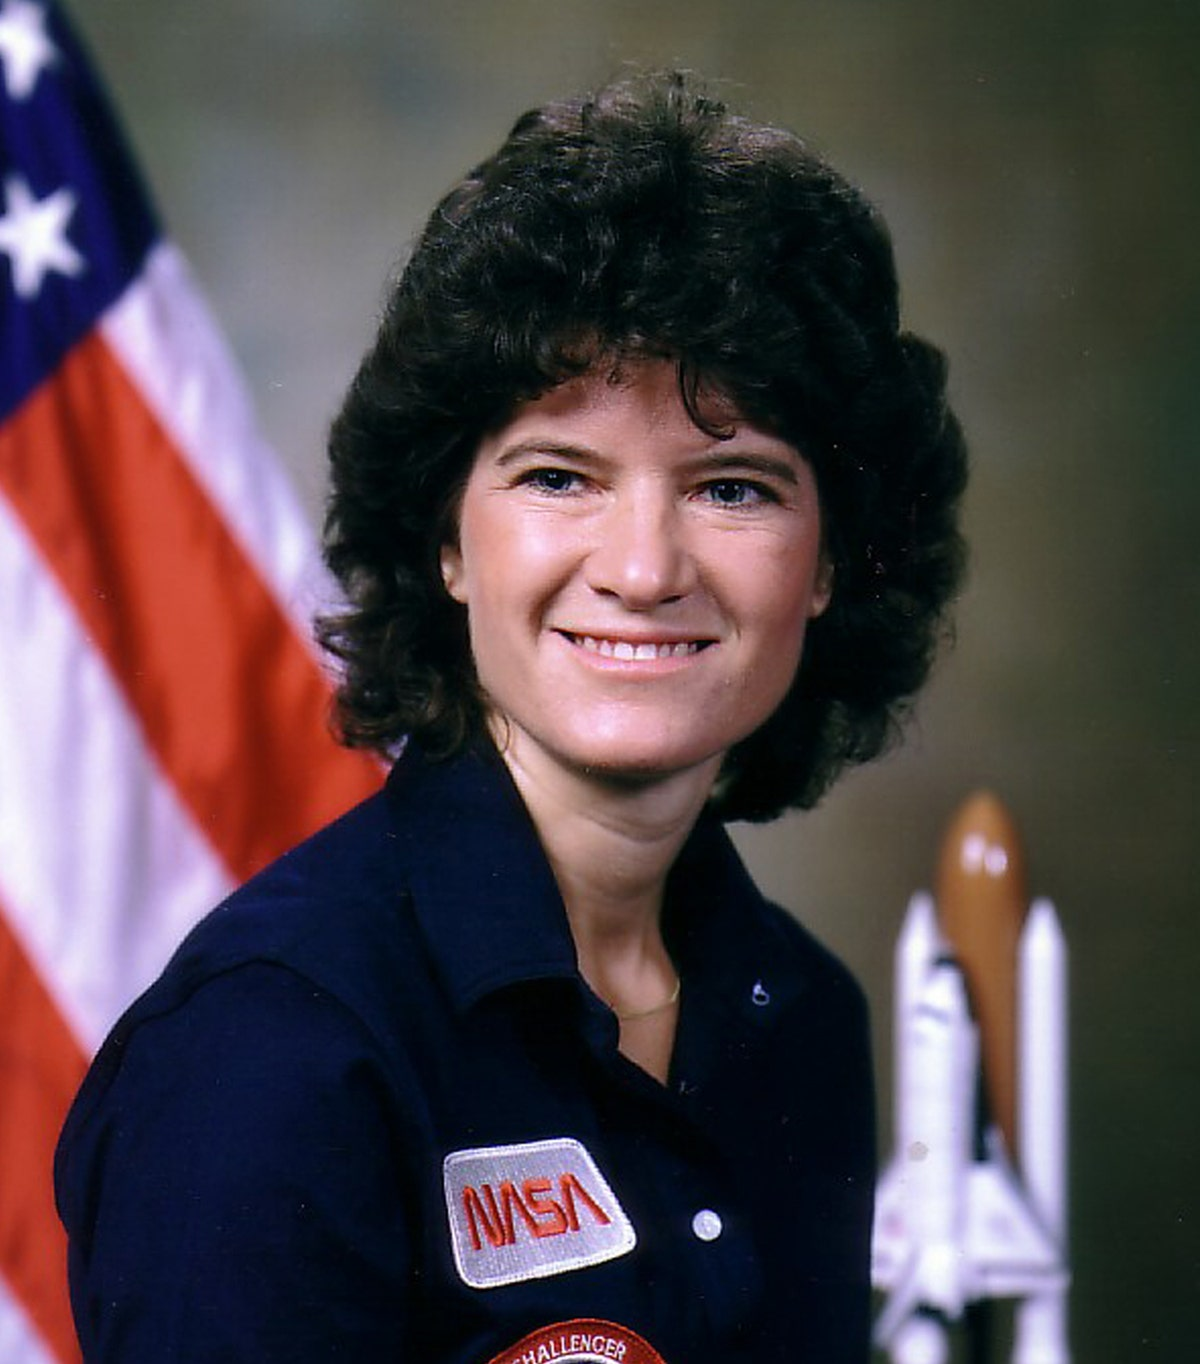 first american female astronaut in space - photo #21